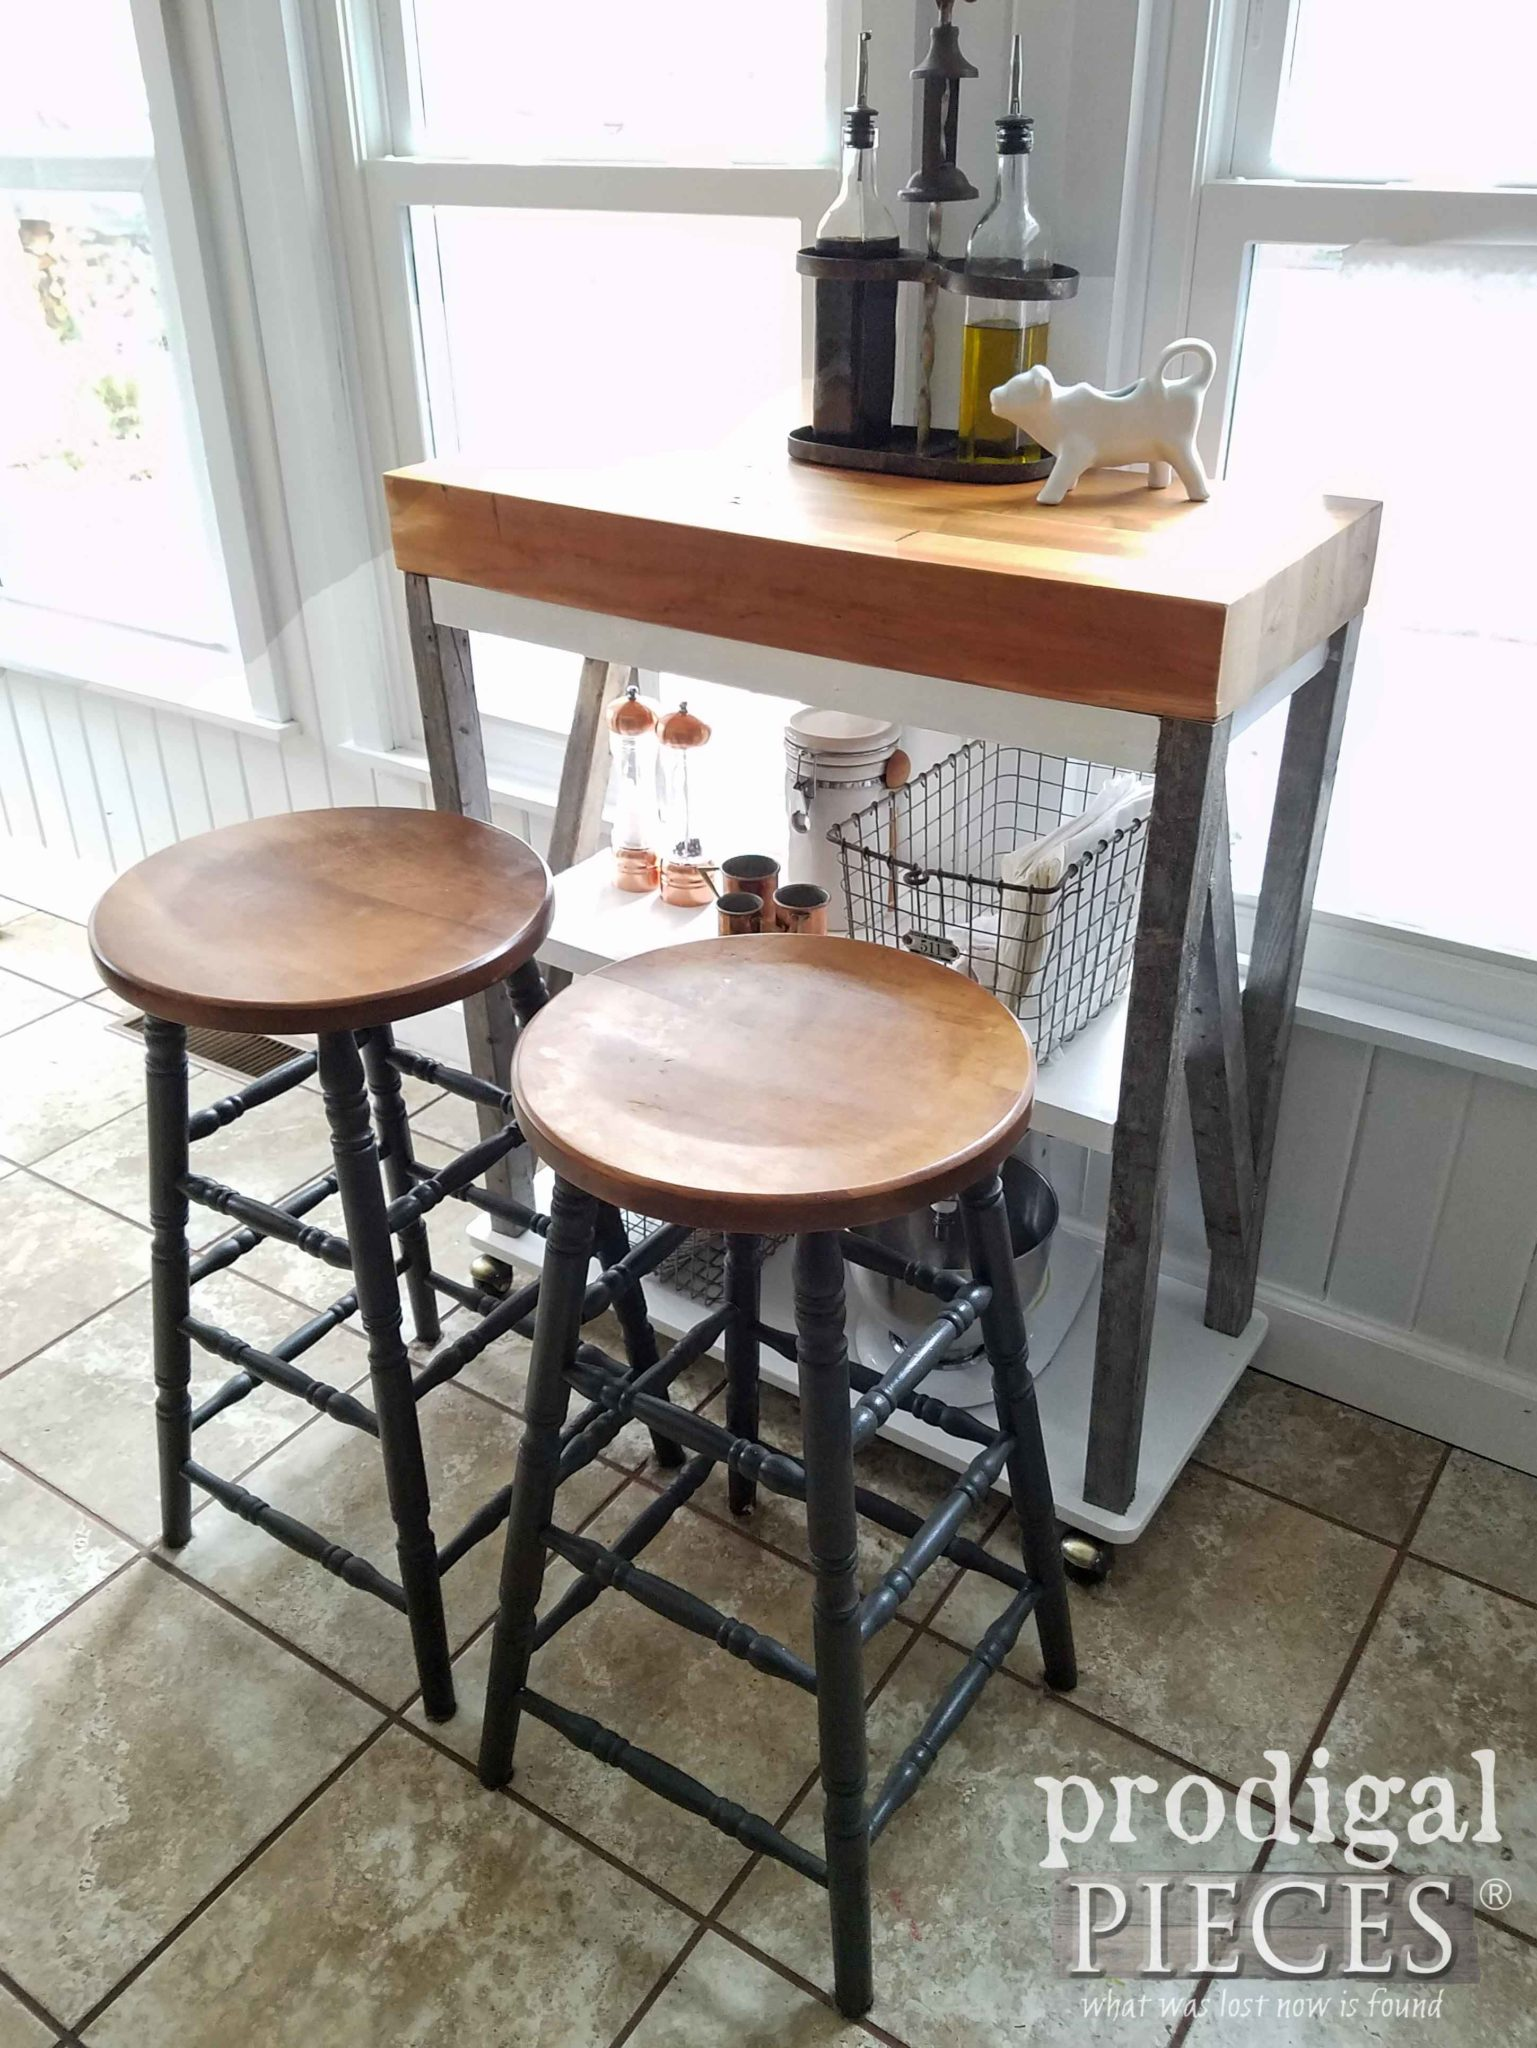 DIY Kitchen Coffee Bar Cart built with reclaimed wood by Larissa of Prodigal Pieces | prodigalpieces.com